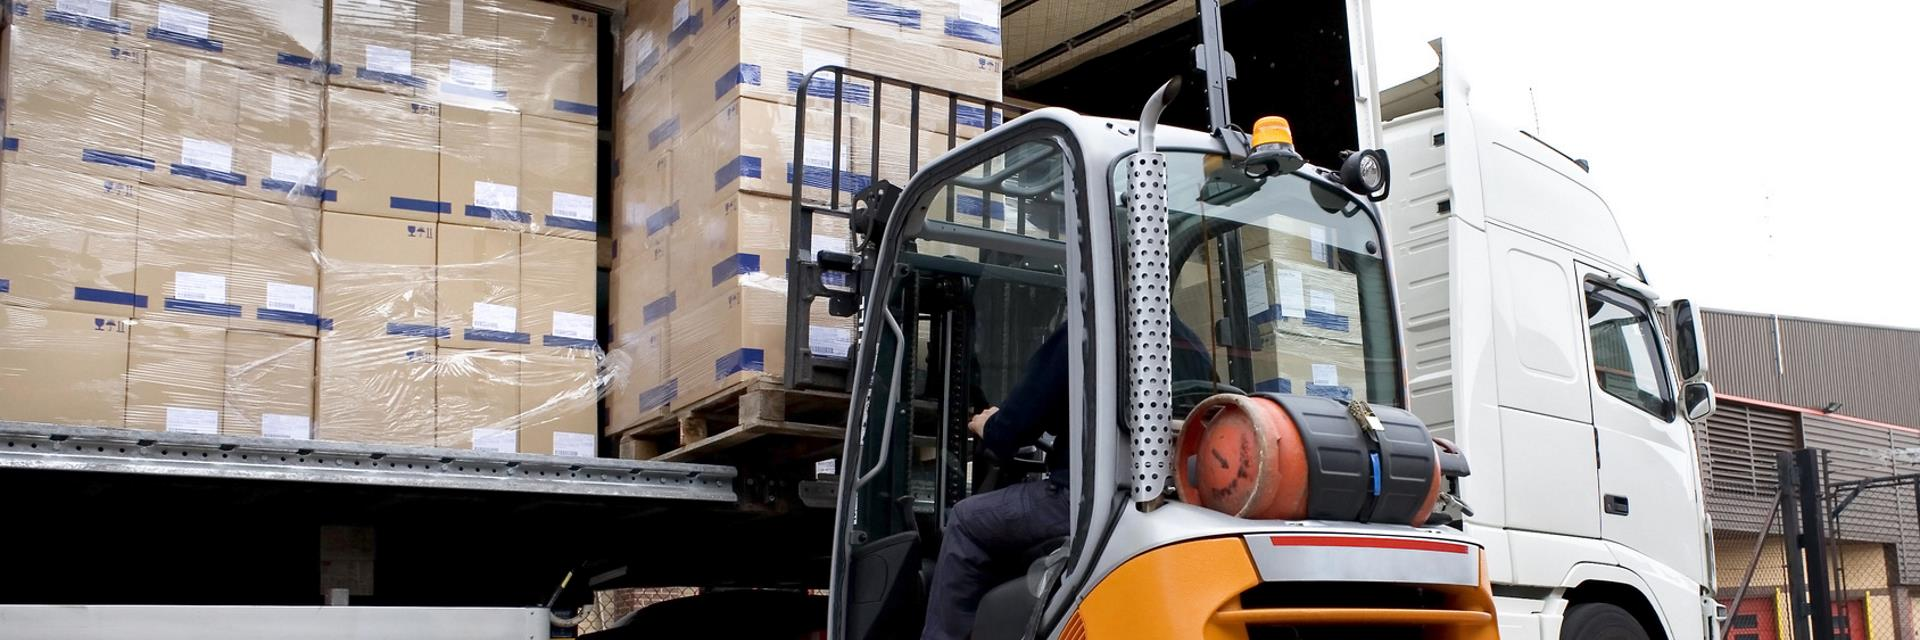 Forklift driver loading pallets onto a trailer for onward distribution